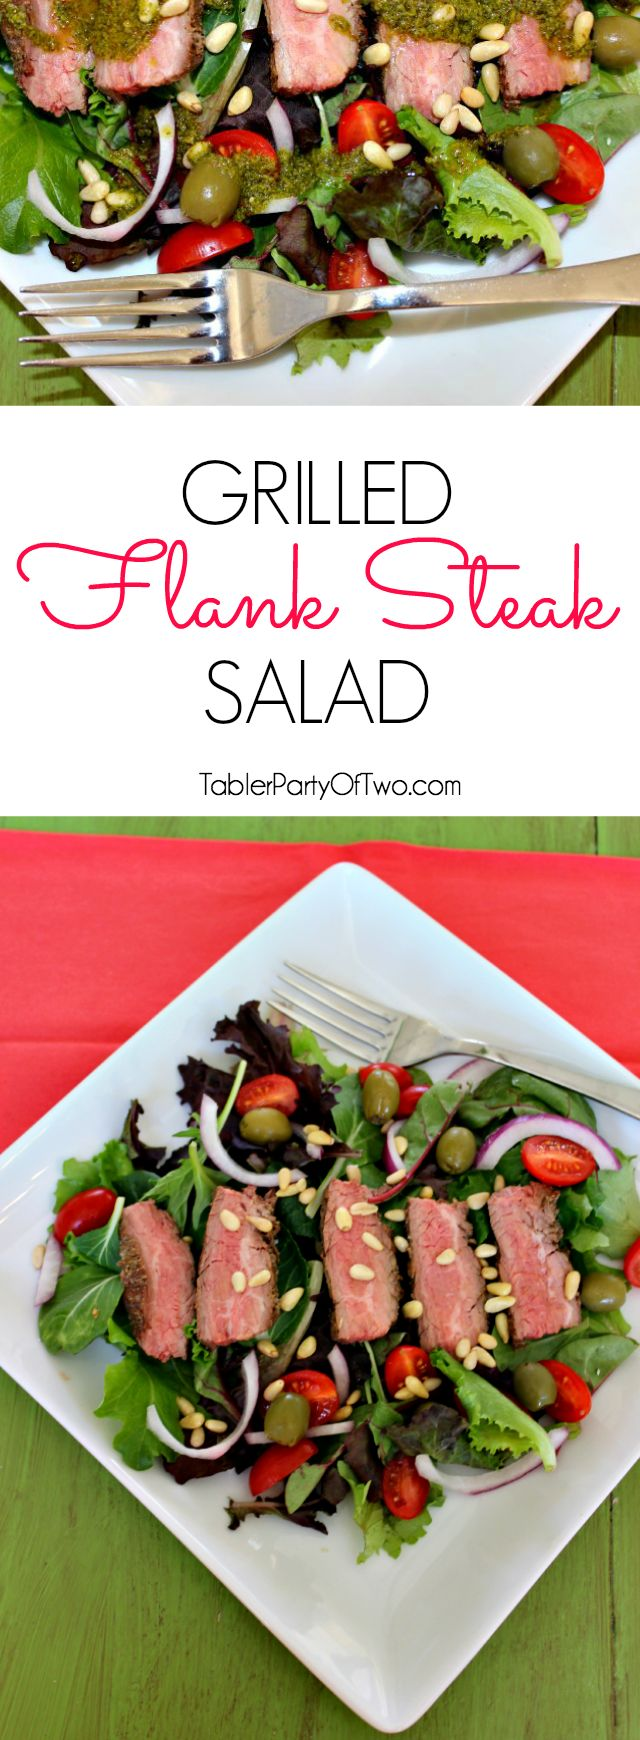 about Salads and vegan Board on Pinterest | Nutritional yeast, Steak ...